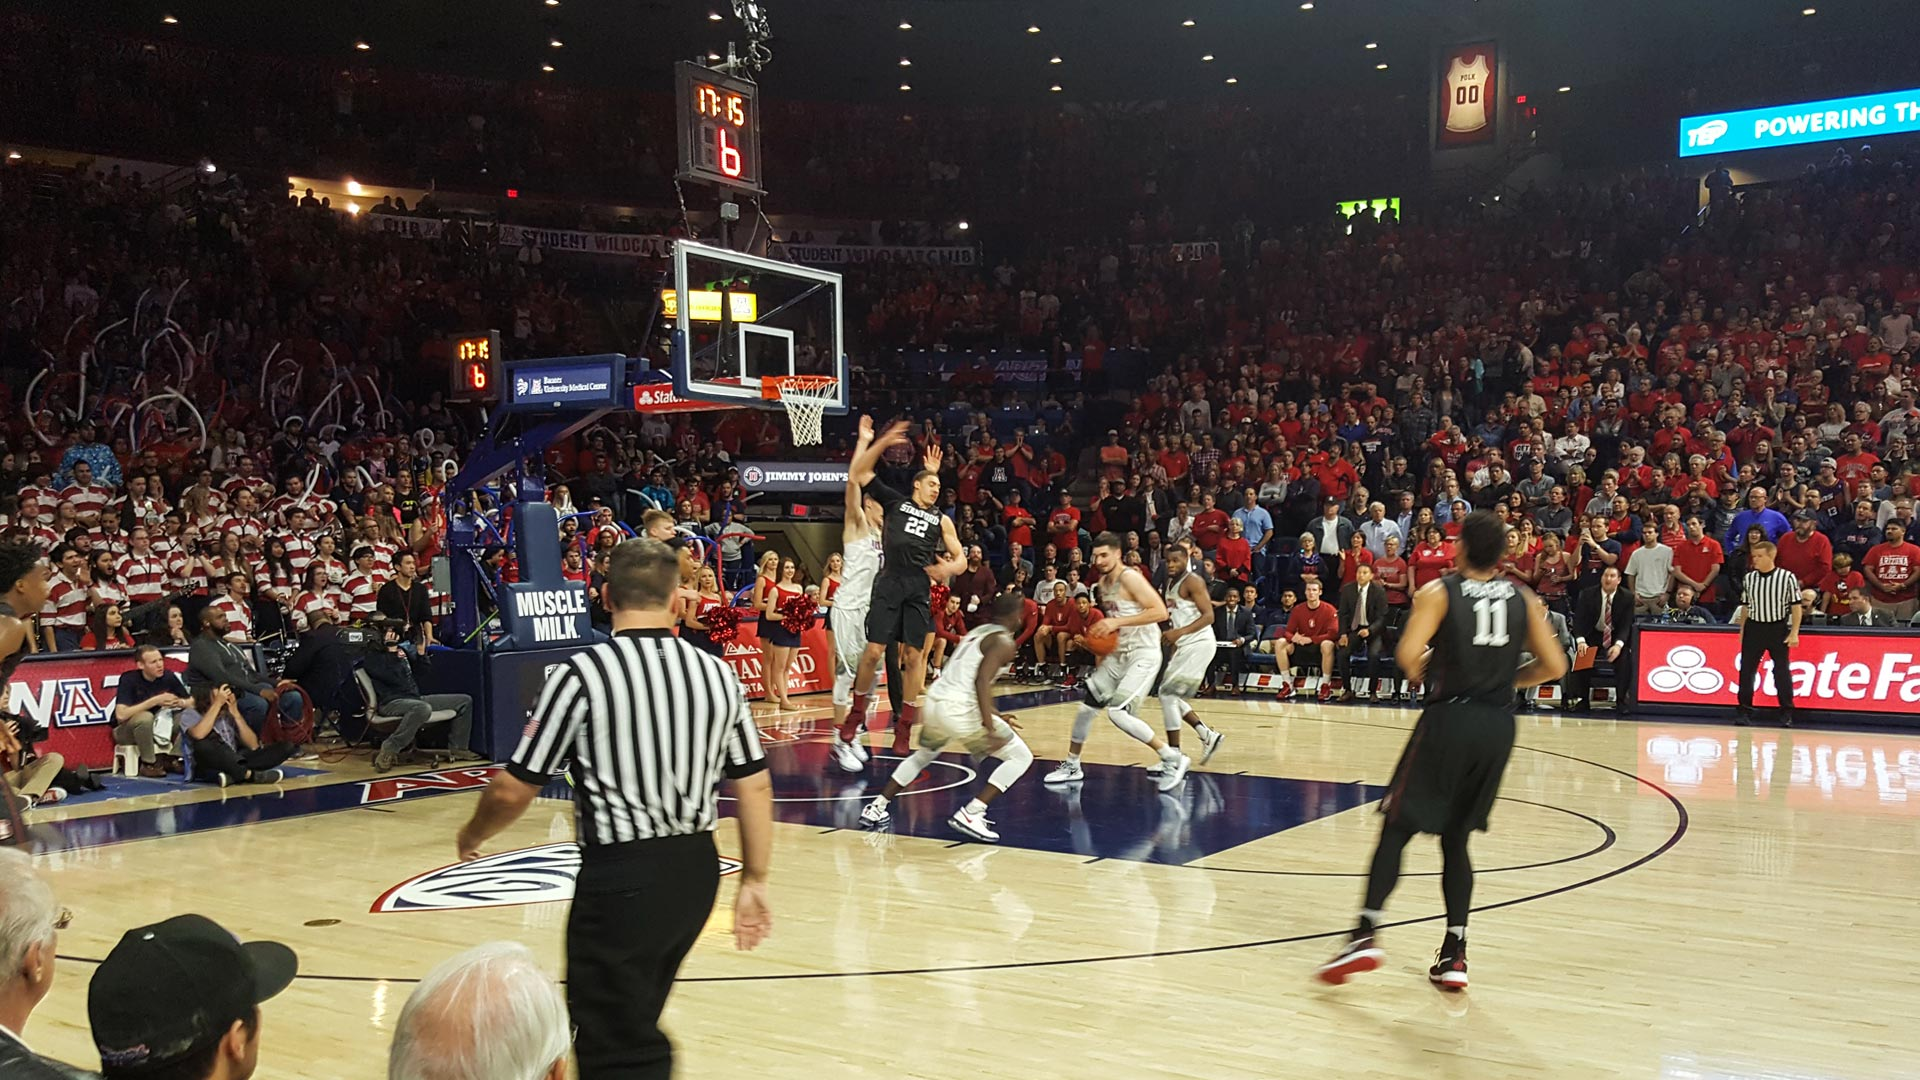 University of Arizona basketball, athletics hero